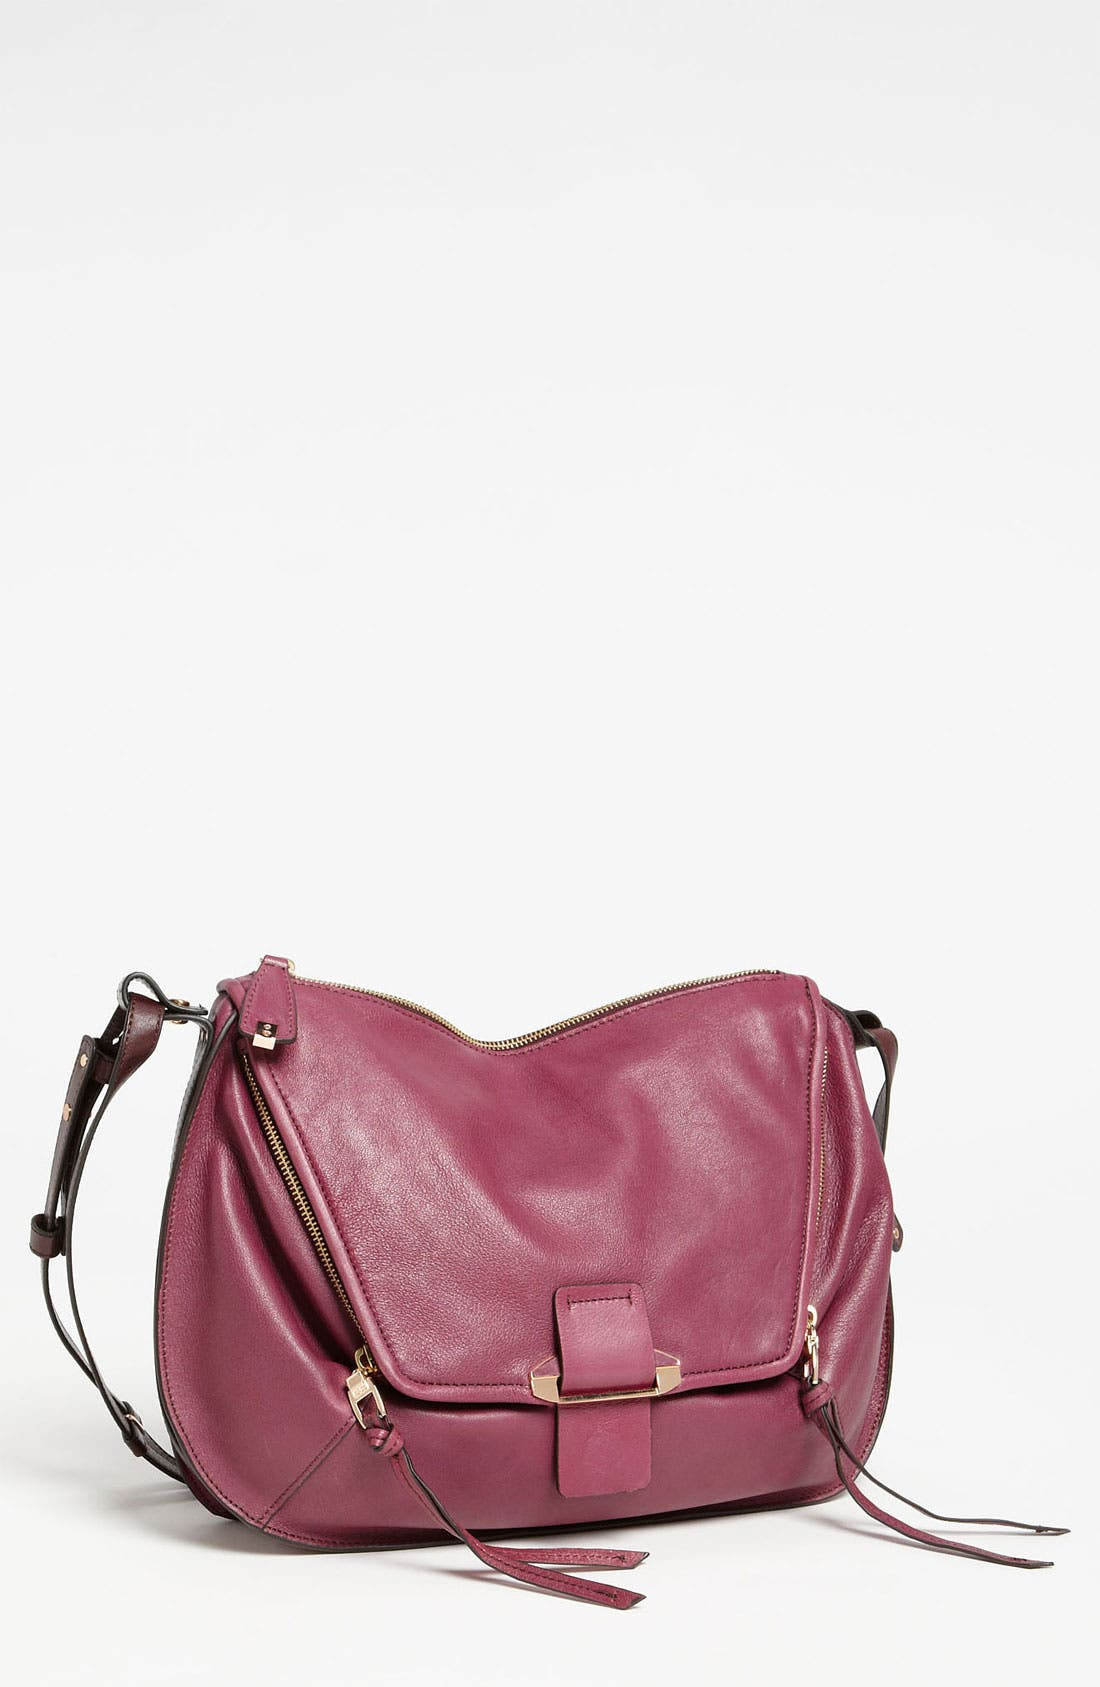 Alternate Image 1 Selected - Kooba 'Leroy' Crossbody Bag